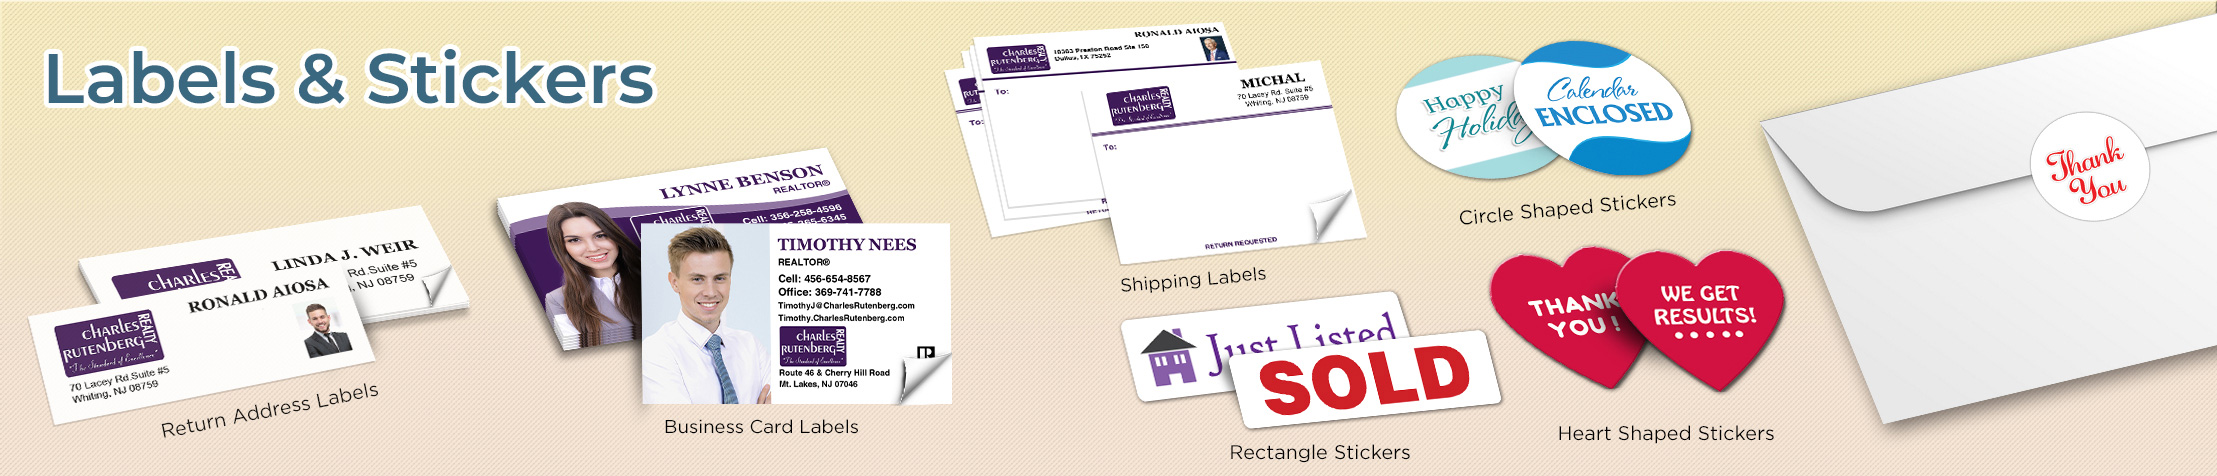 Charles Rutenberg Realty Real Estate Labels and Stickers - Charles Rutenberg Realty  business card labels, return address labels, shipping labels, and assorted stickers | BestPrintBuy.com